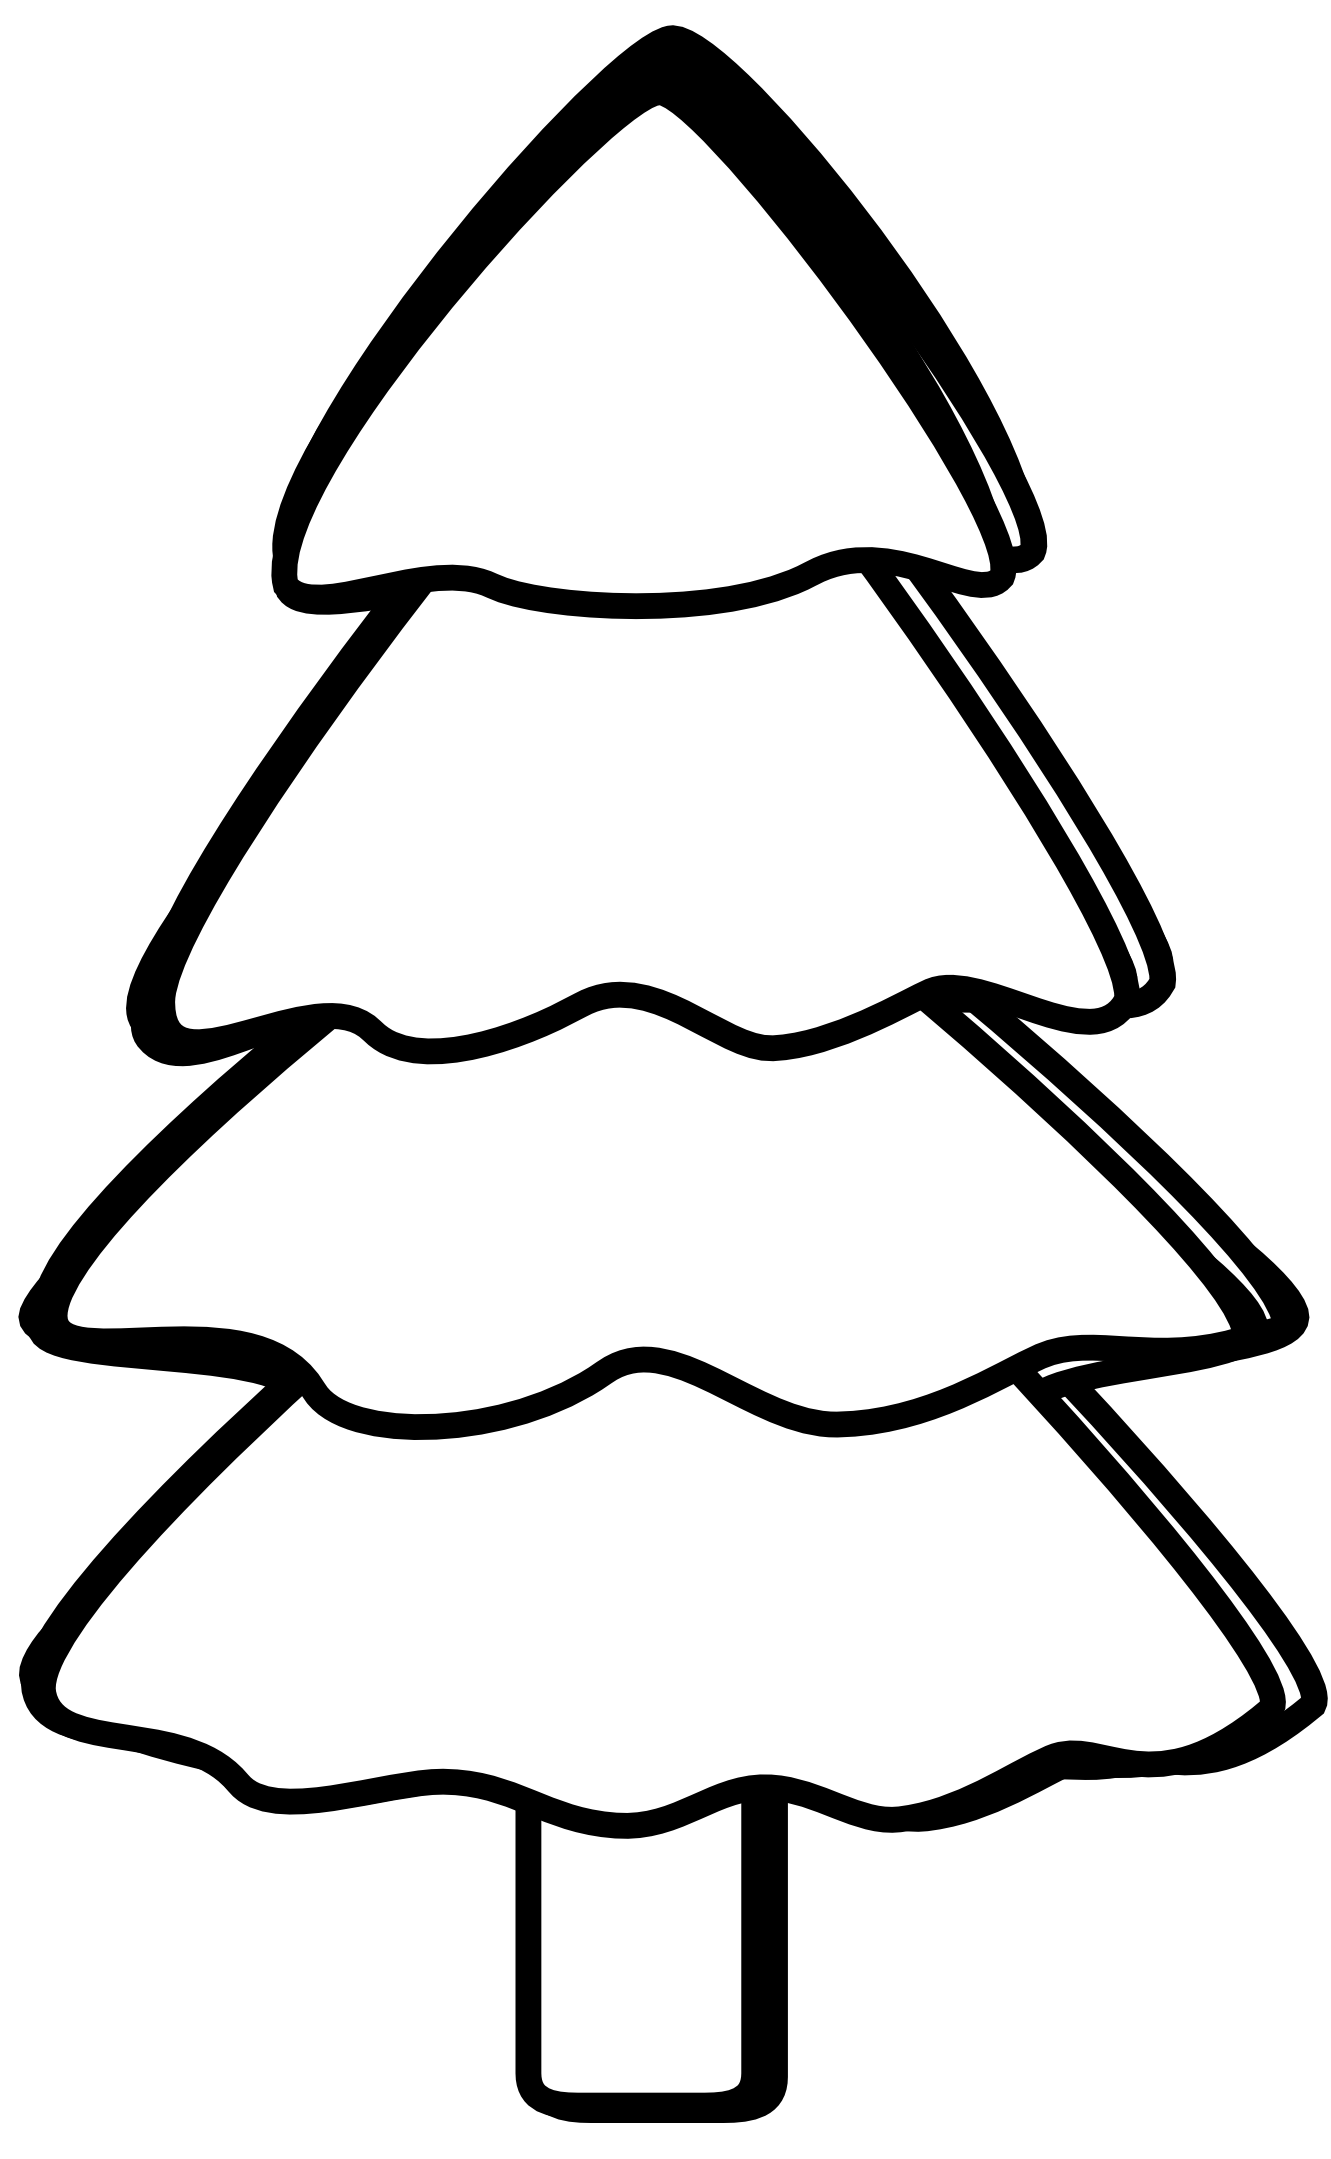 1331x2159 Tree Black And White Clipart